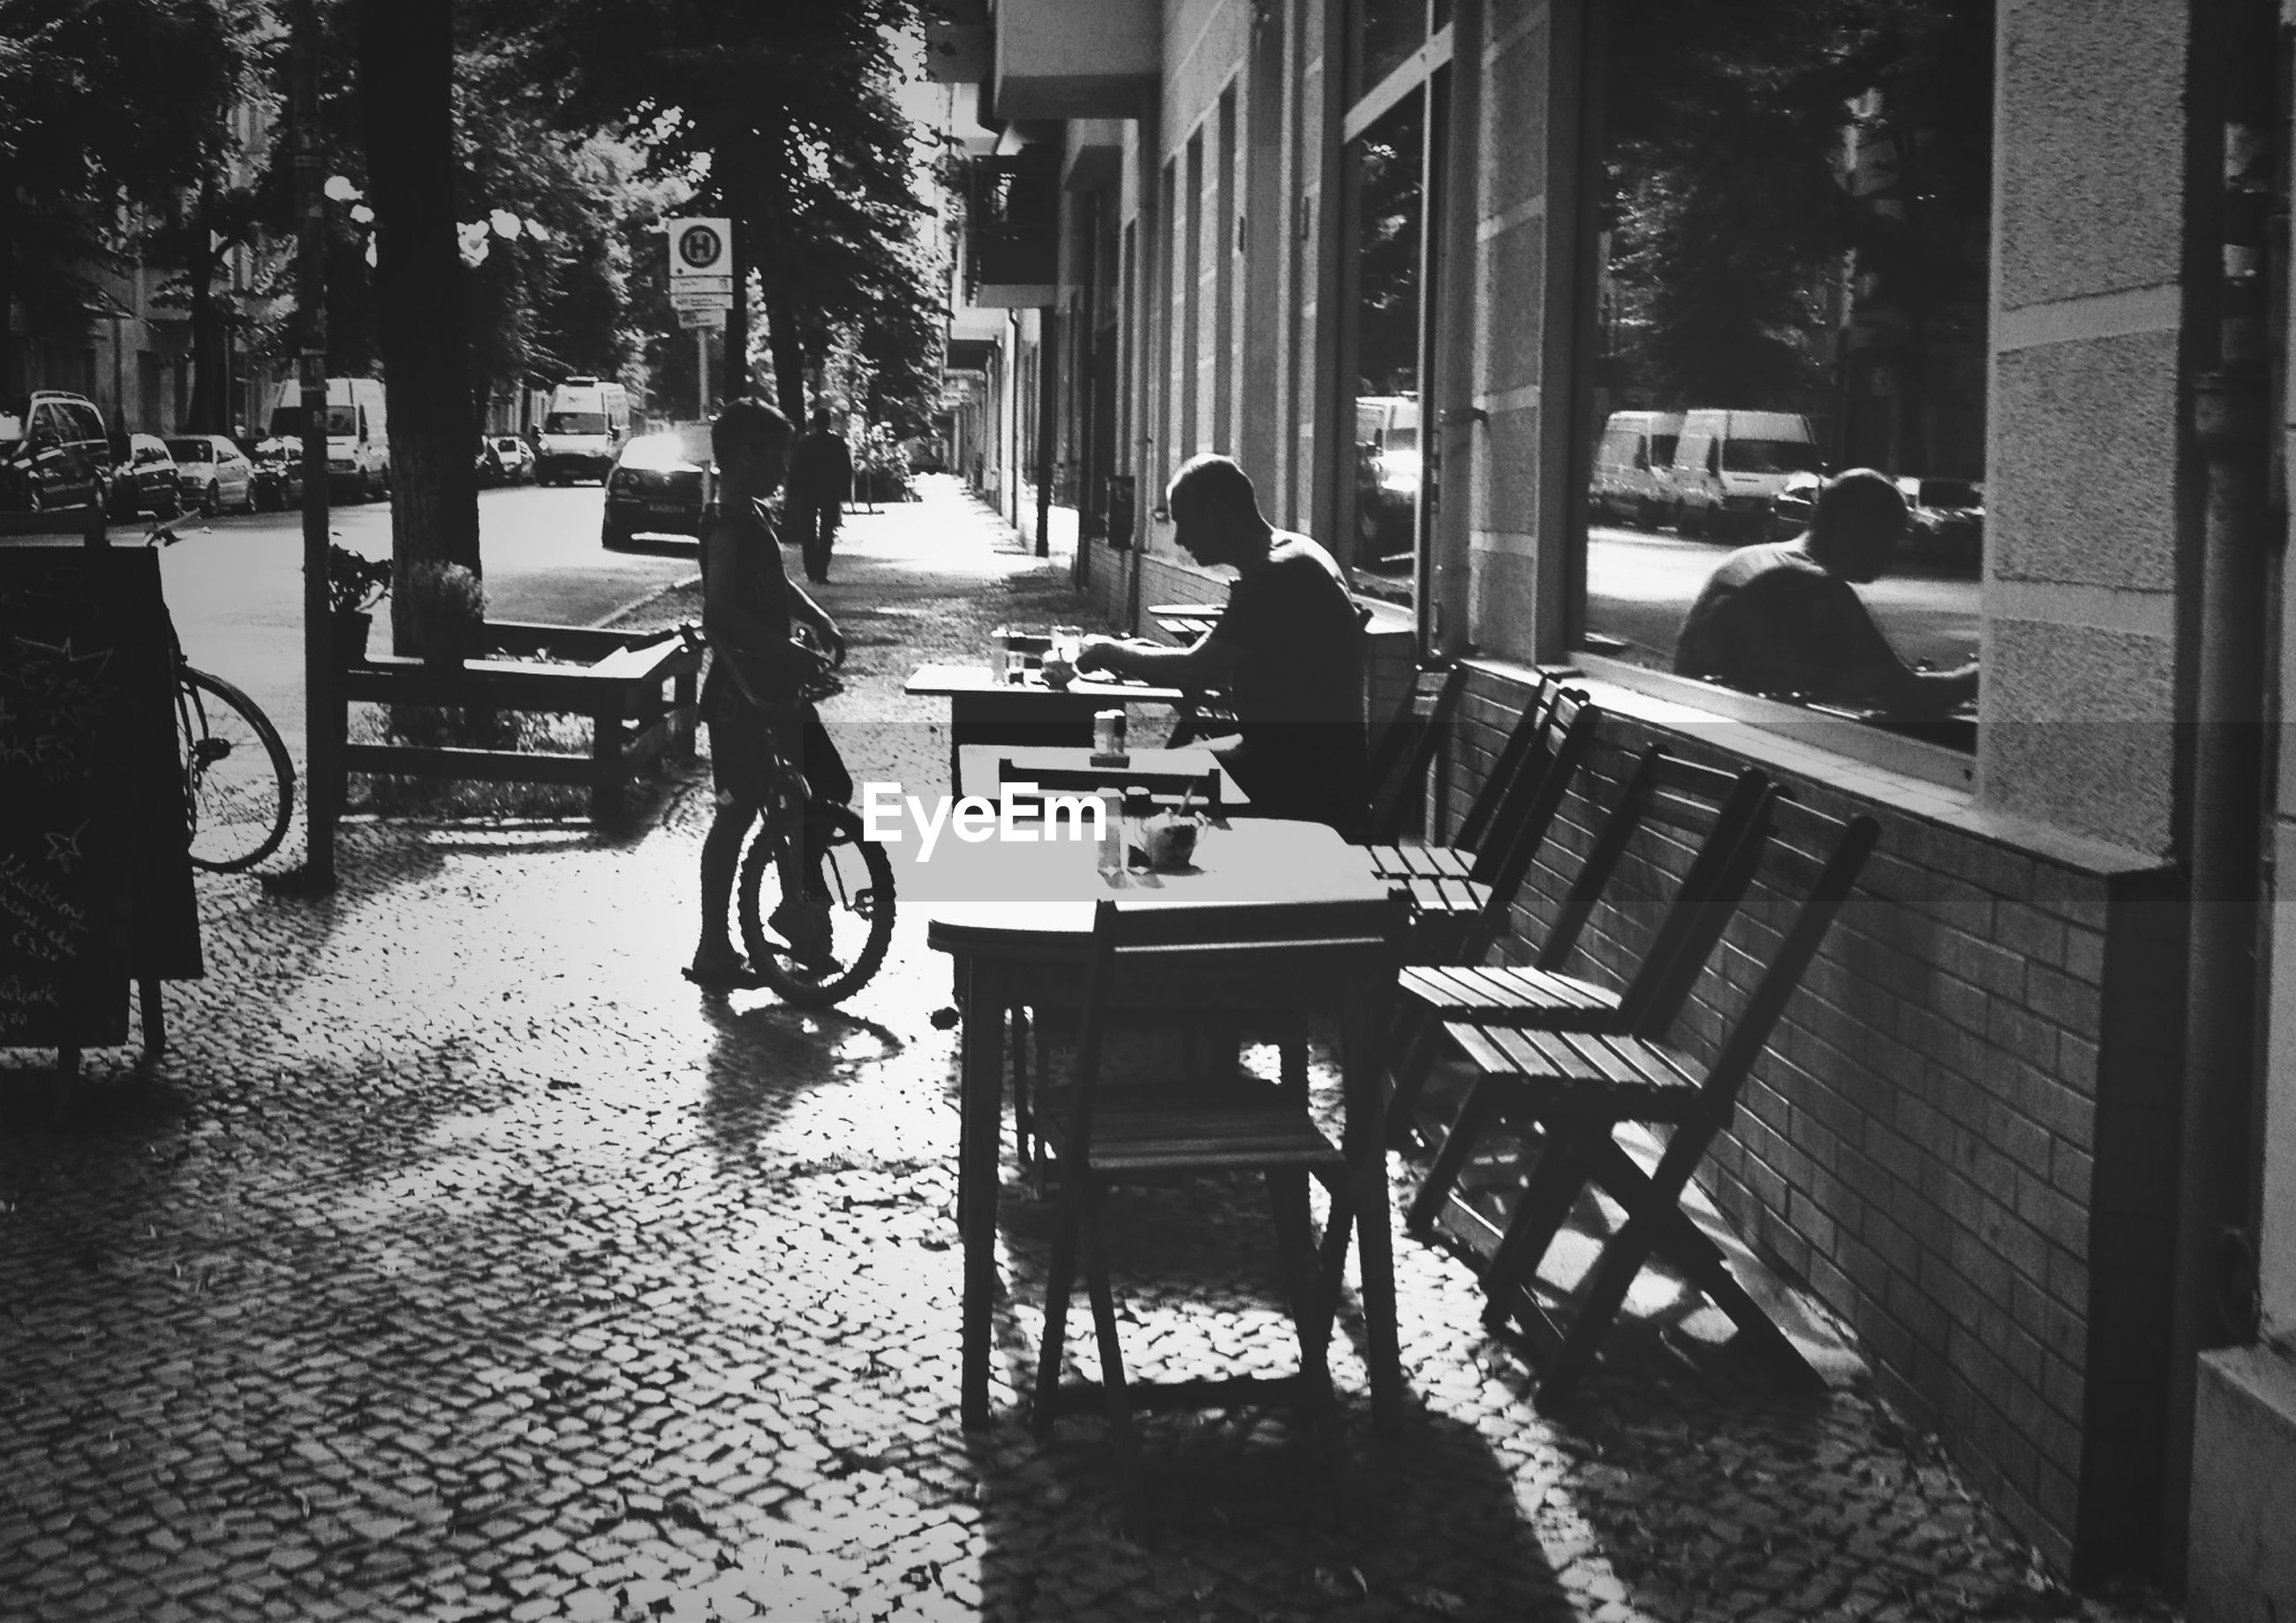 building exterior, architecture, built structure, chair, city, table, sitting, incidental people, sidewalk cafe, street, bench, city life, day, car, sunlight, men, mode of transport, transportation, relaxation